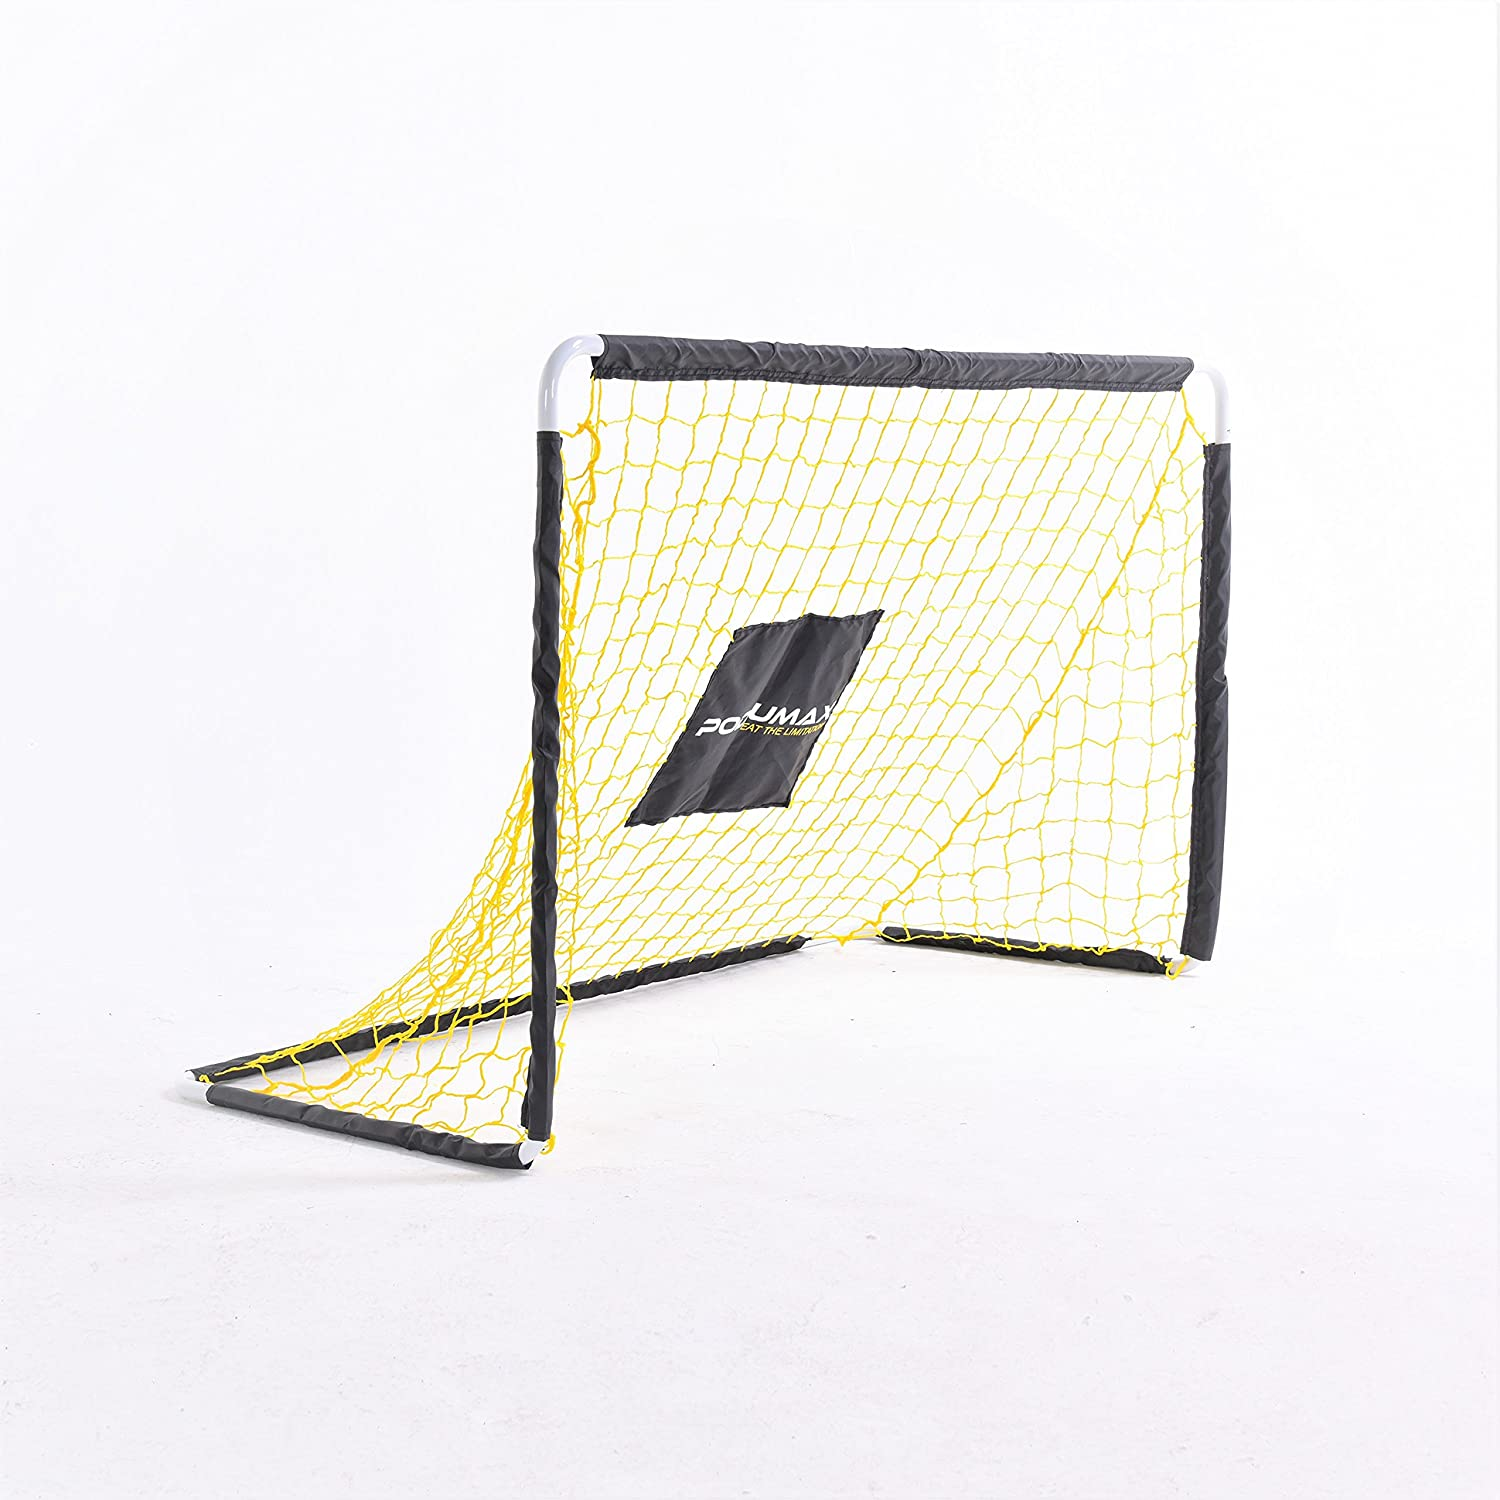 PodiuMax Football Goal for Kids Children, DIY Metal Tube with Powerful Net &Ground Pegs, Perfect for Garden Scrimmage Game, Black/Yellow |Limit time sale| PDMS2016004